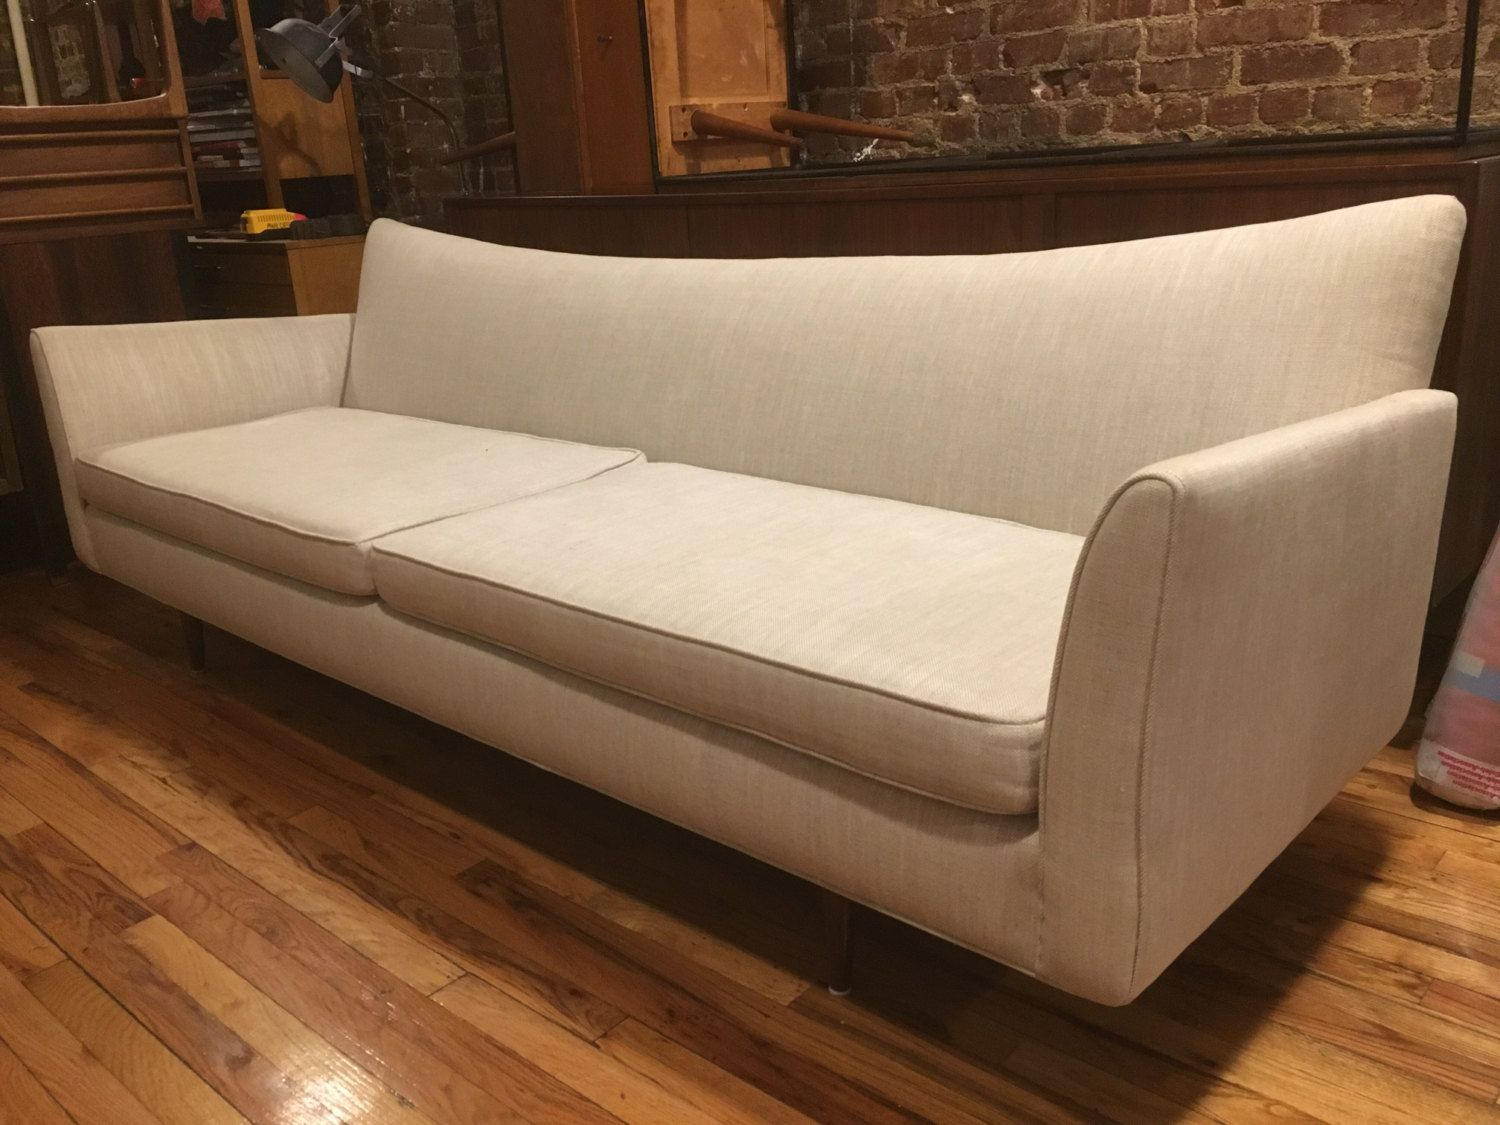 Exceptional Midcentury Modern Mccobb Style Long Low Sofa Couch White Beautiful Long  Offwhite Mid Century Sofa With